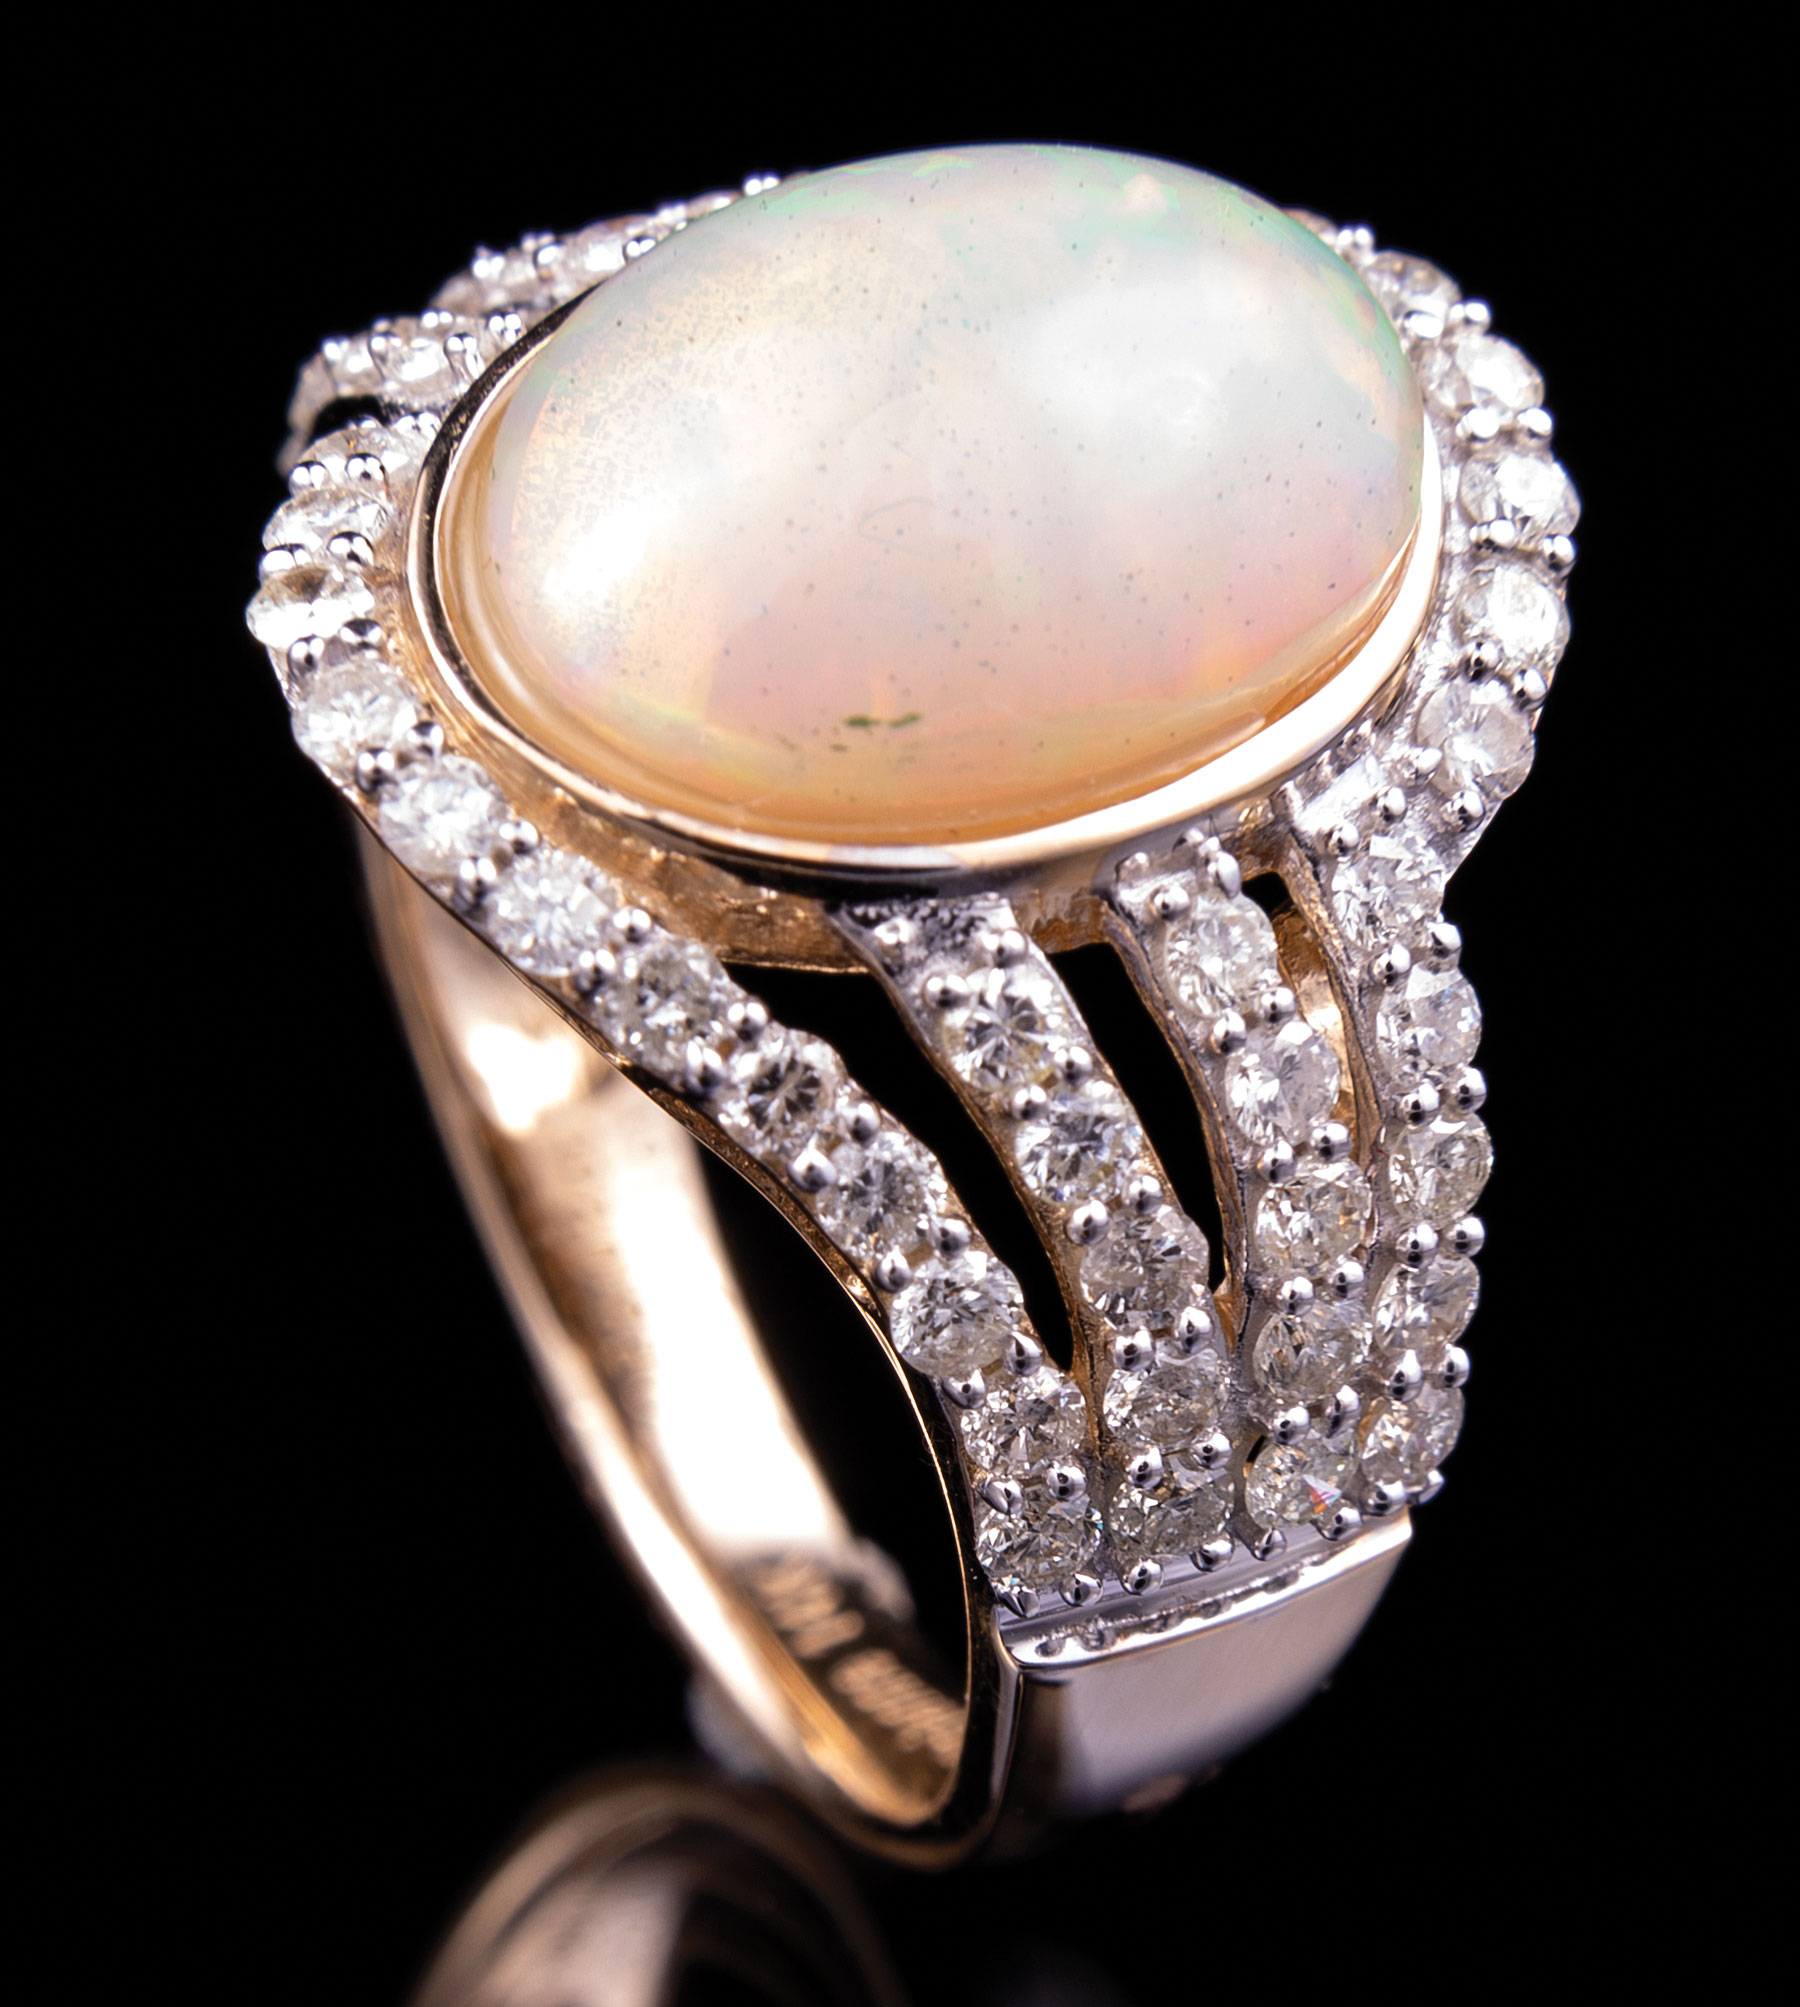 Lot 625 - 14 kt. Yellow Gold, Opal and Diamond Ring , bezel set oval cabochon opal, wt. approx. 3.02 cts.;